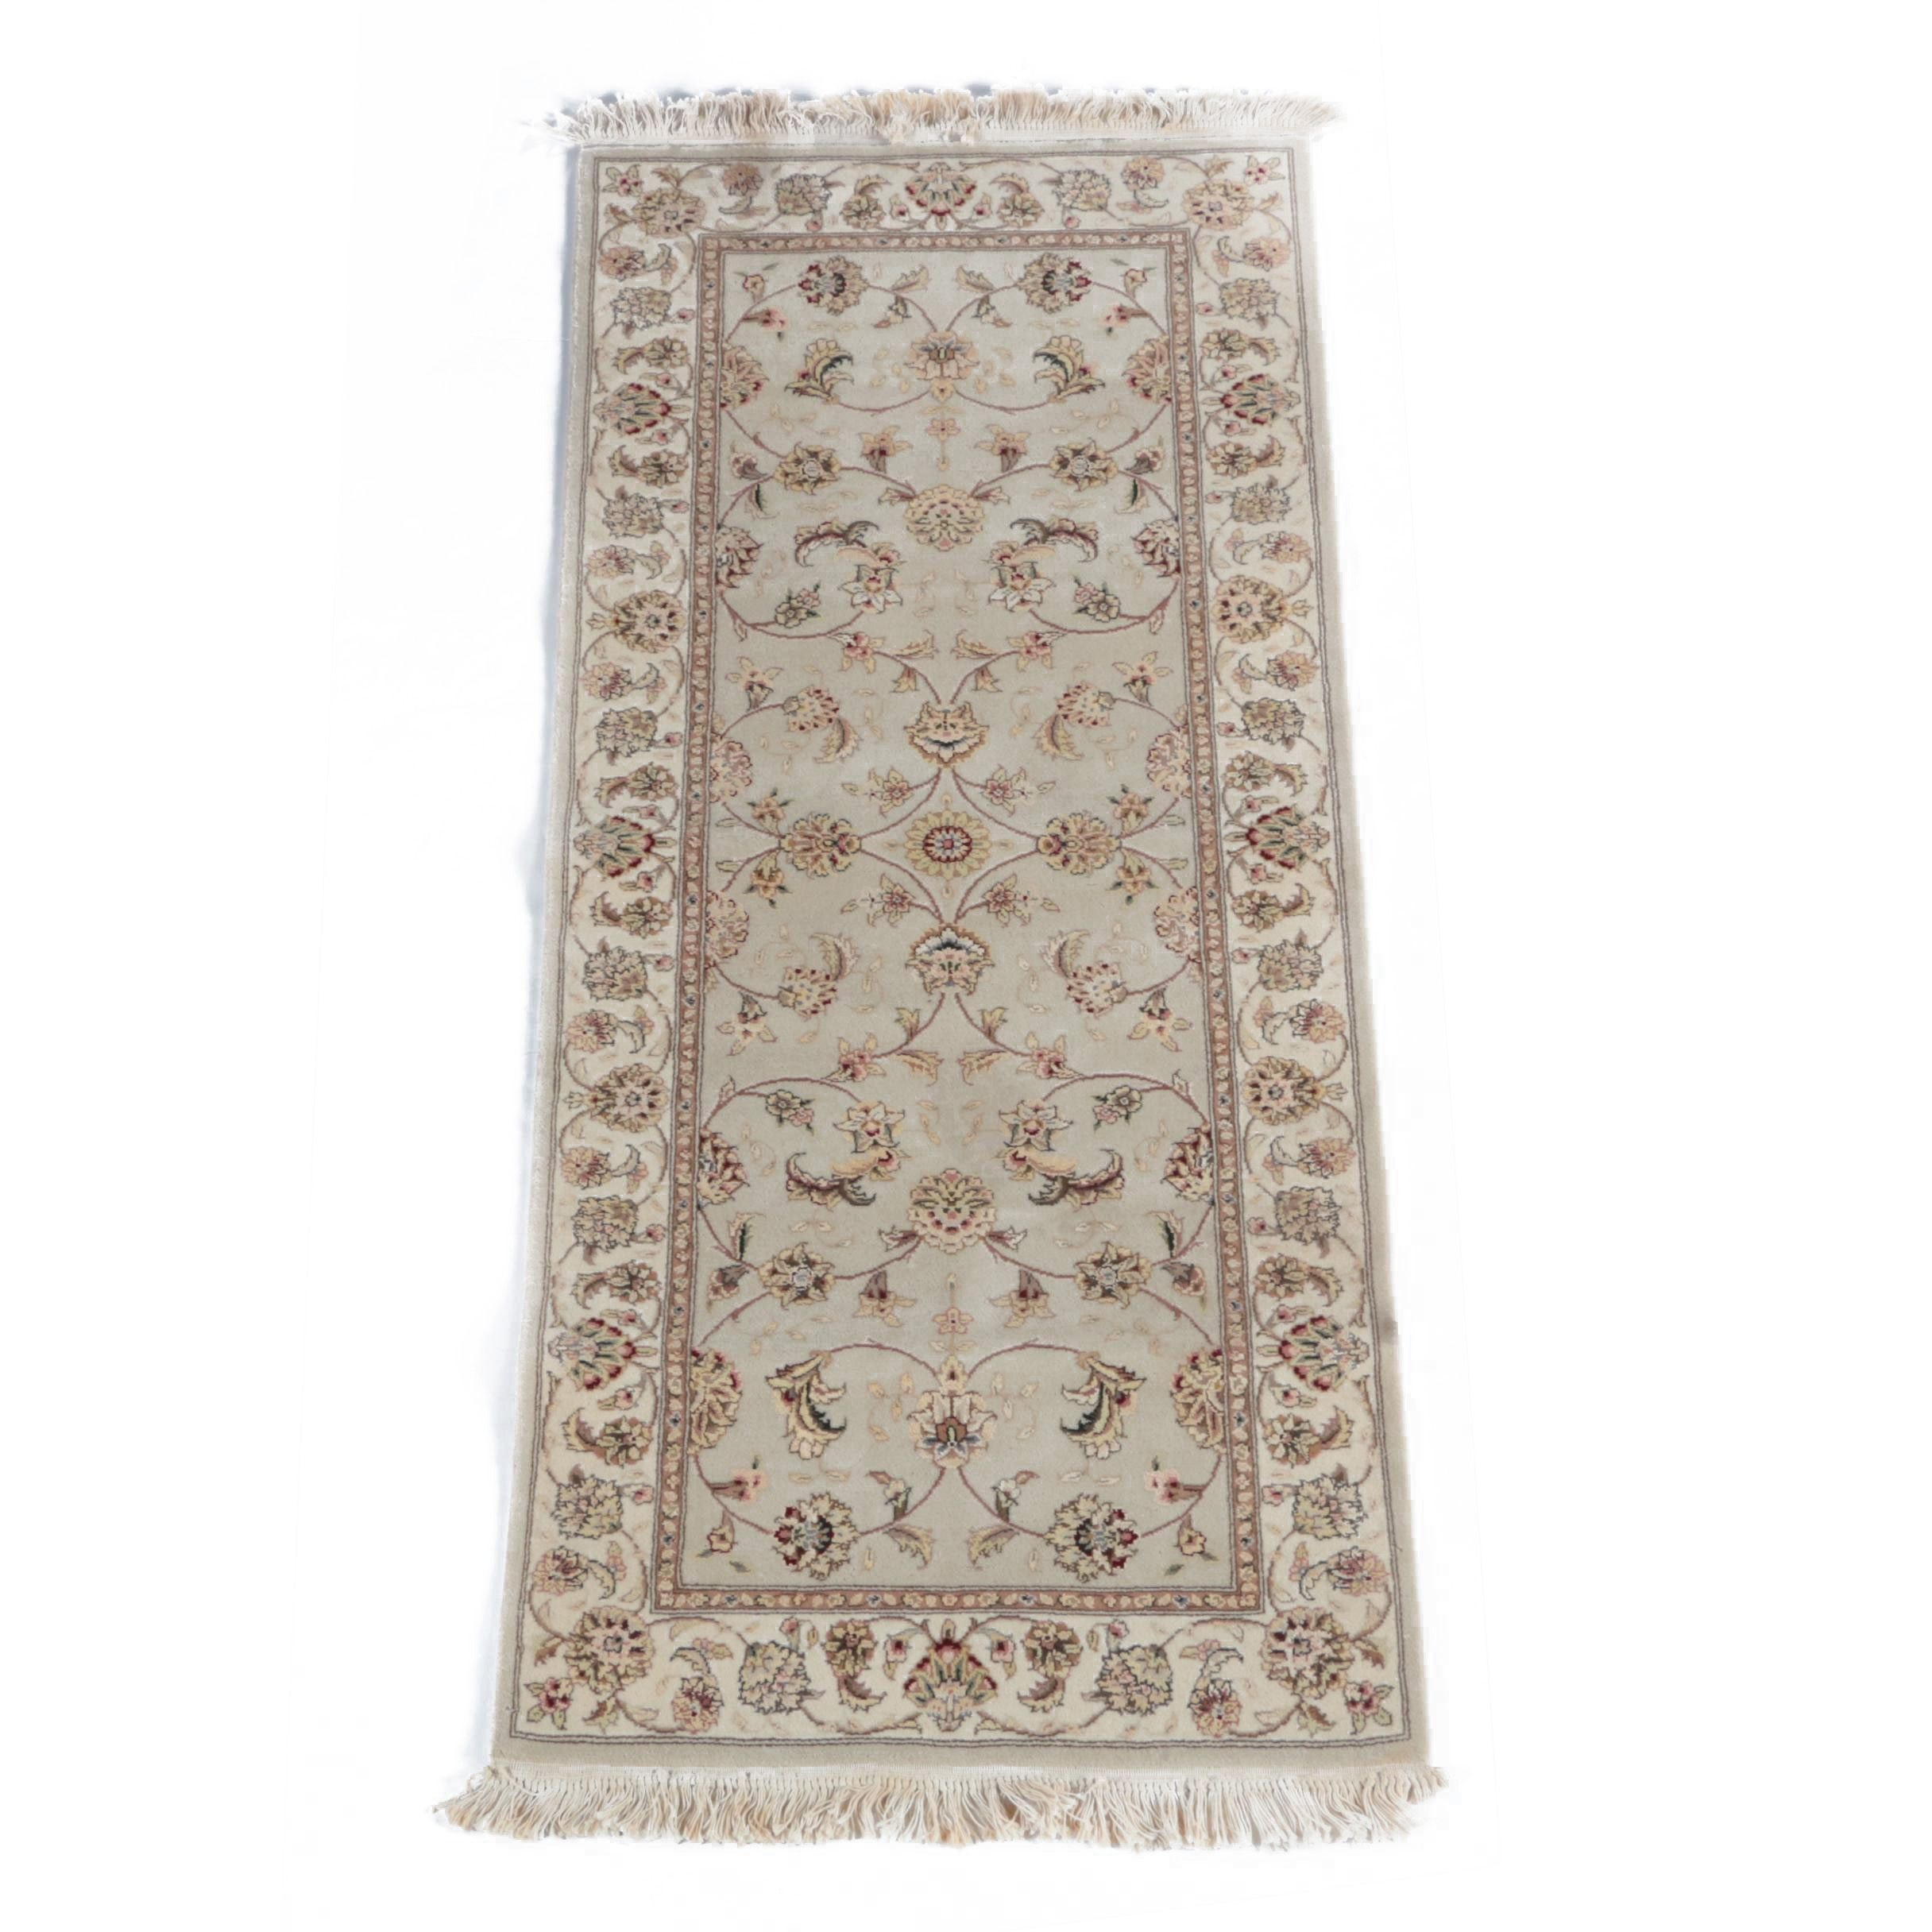 Hand-Knotted Sino-Persian Wool and Silk Carpet Runner